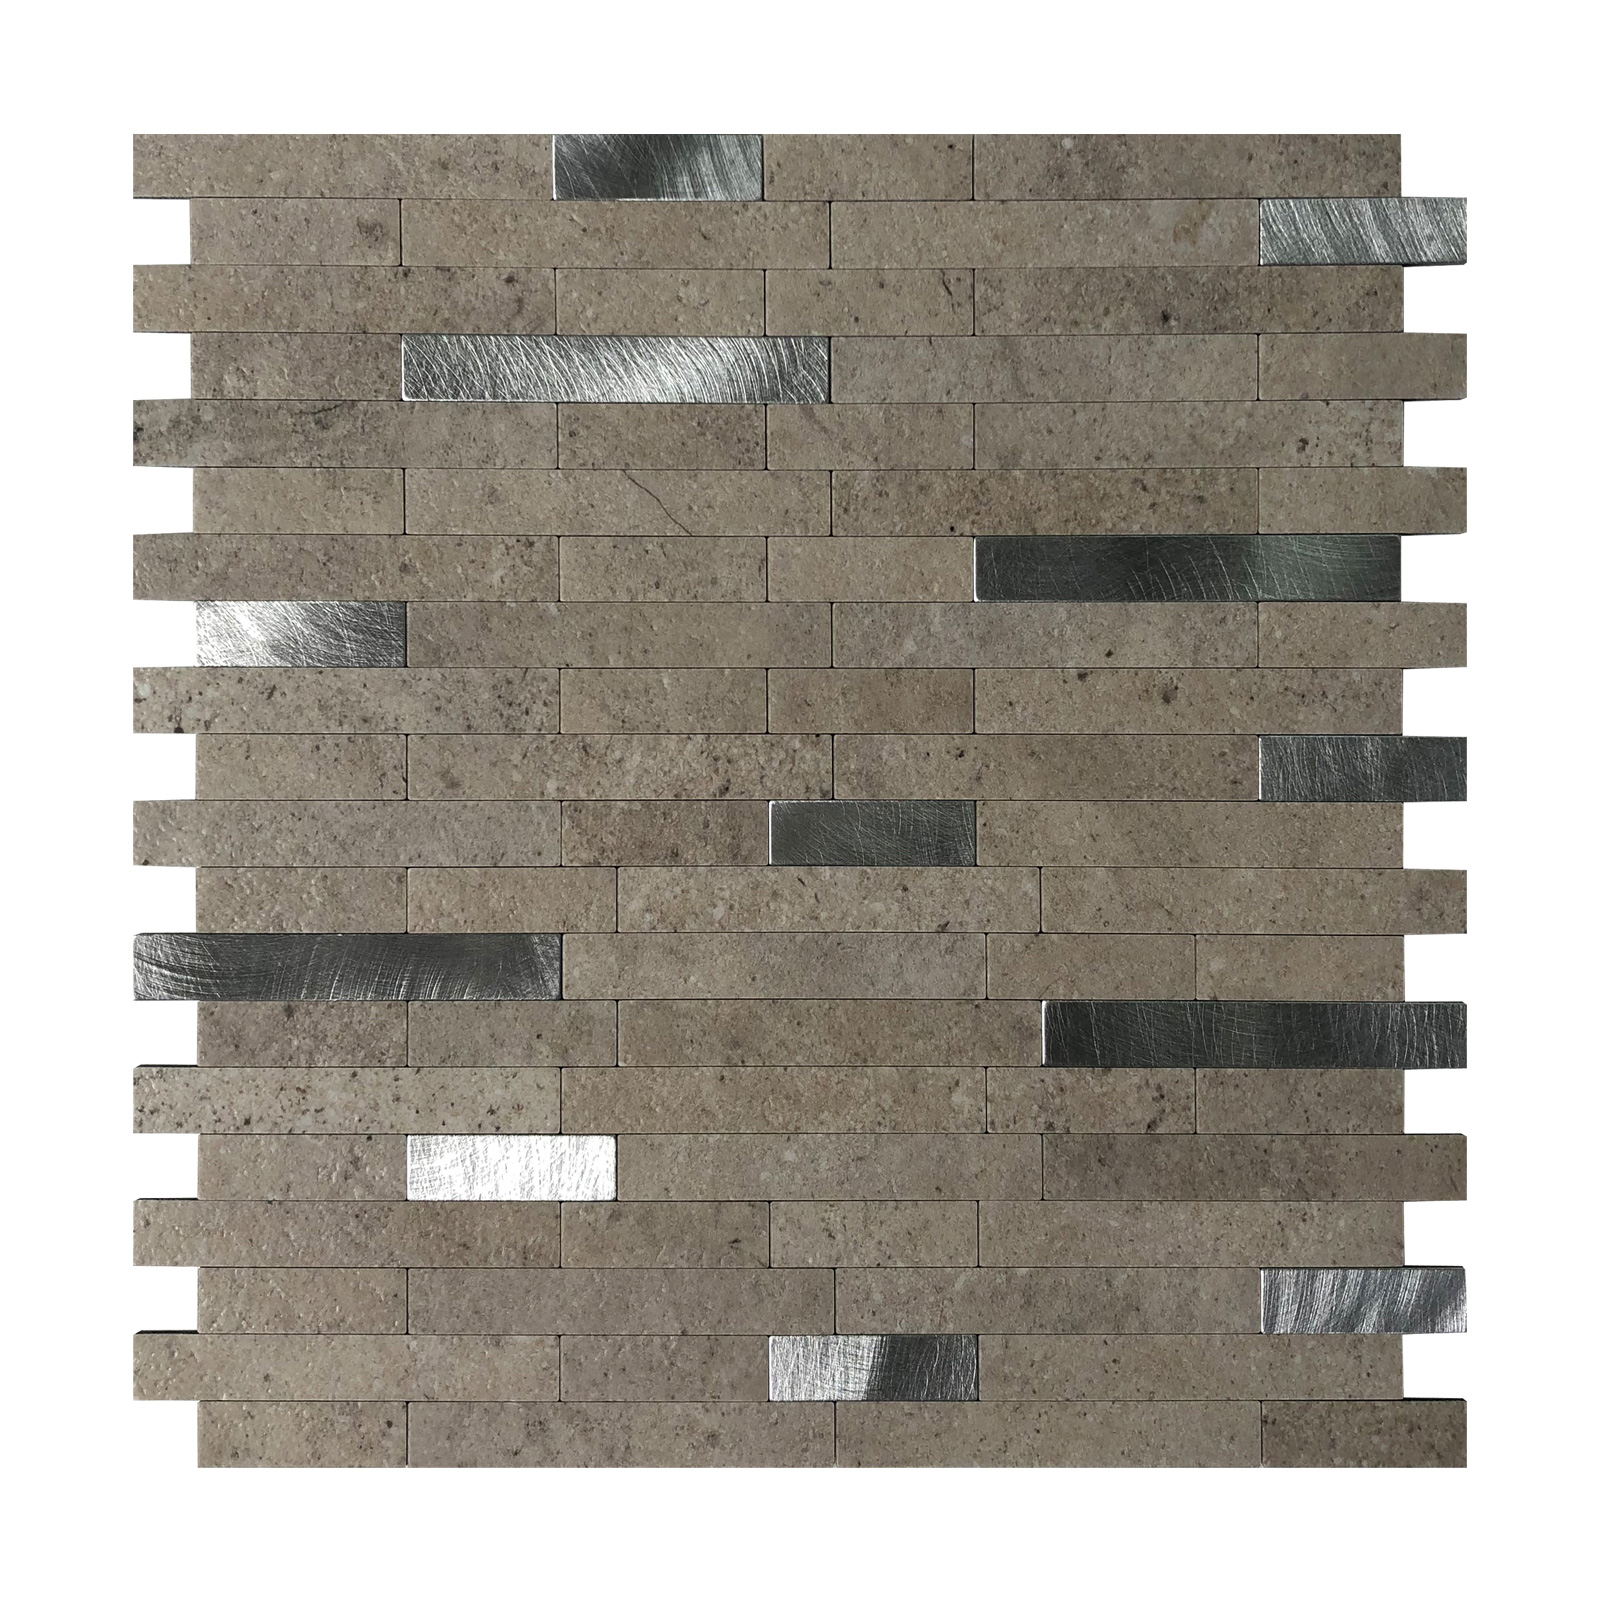 Art3d Peel and Stick Backsplash Tile for Kitchen, Faux Stone Backsplash Tiles(5 Tiles)